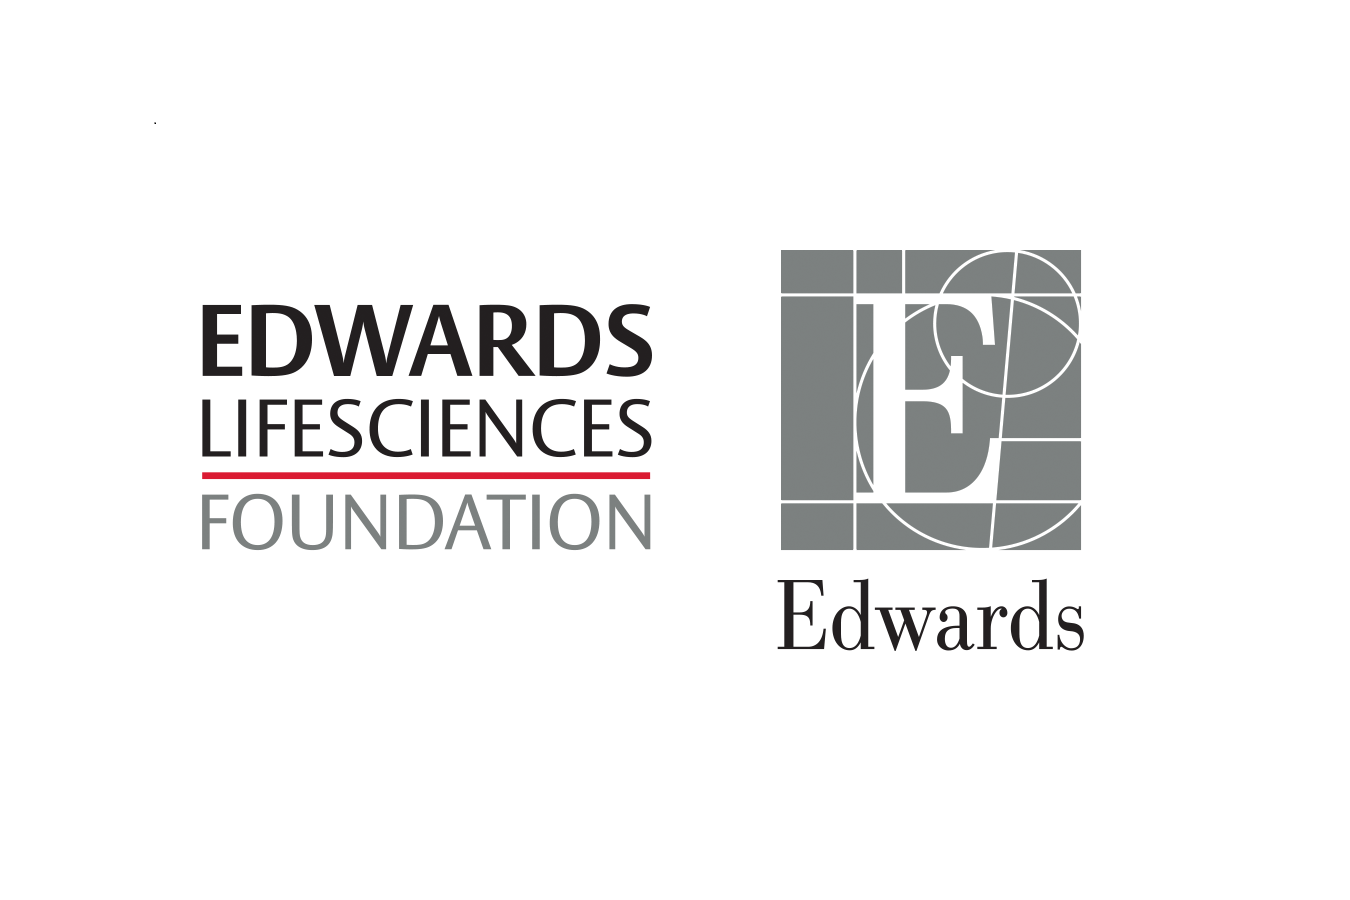 For nearly a decade, the Edwards Lifesciences Foundation has awarded considerable funding to Heart to Heart annually so we can provide advanced education and training to medical professionals throughout Russia – and now Peru. Their generous financial support enables us to provide comprehensive cardiac education and training, including the introduction of the cutting-edge technology.